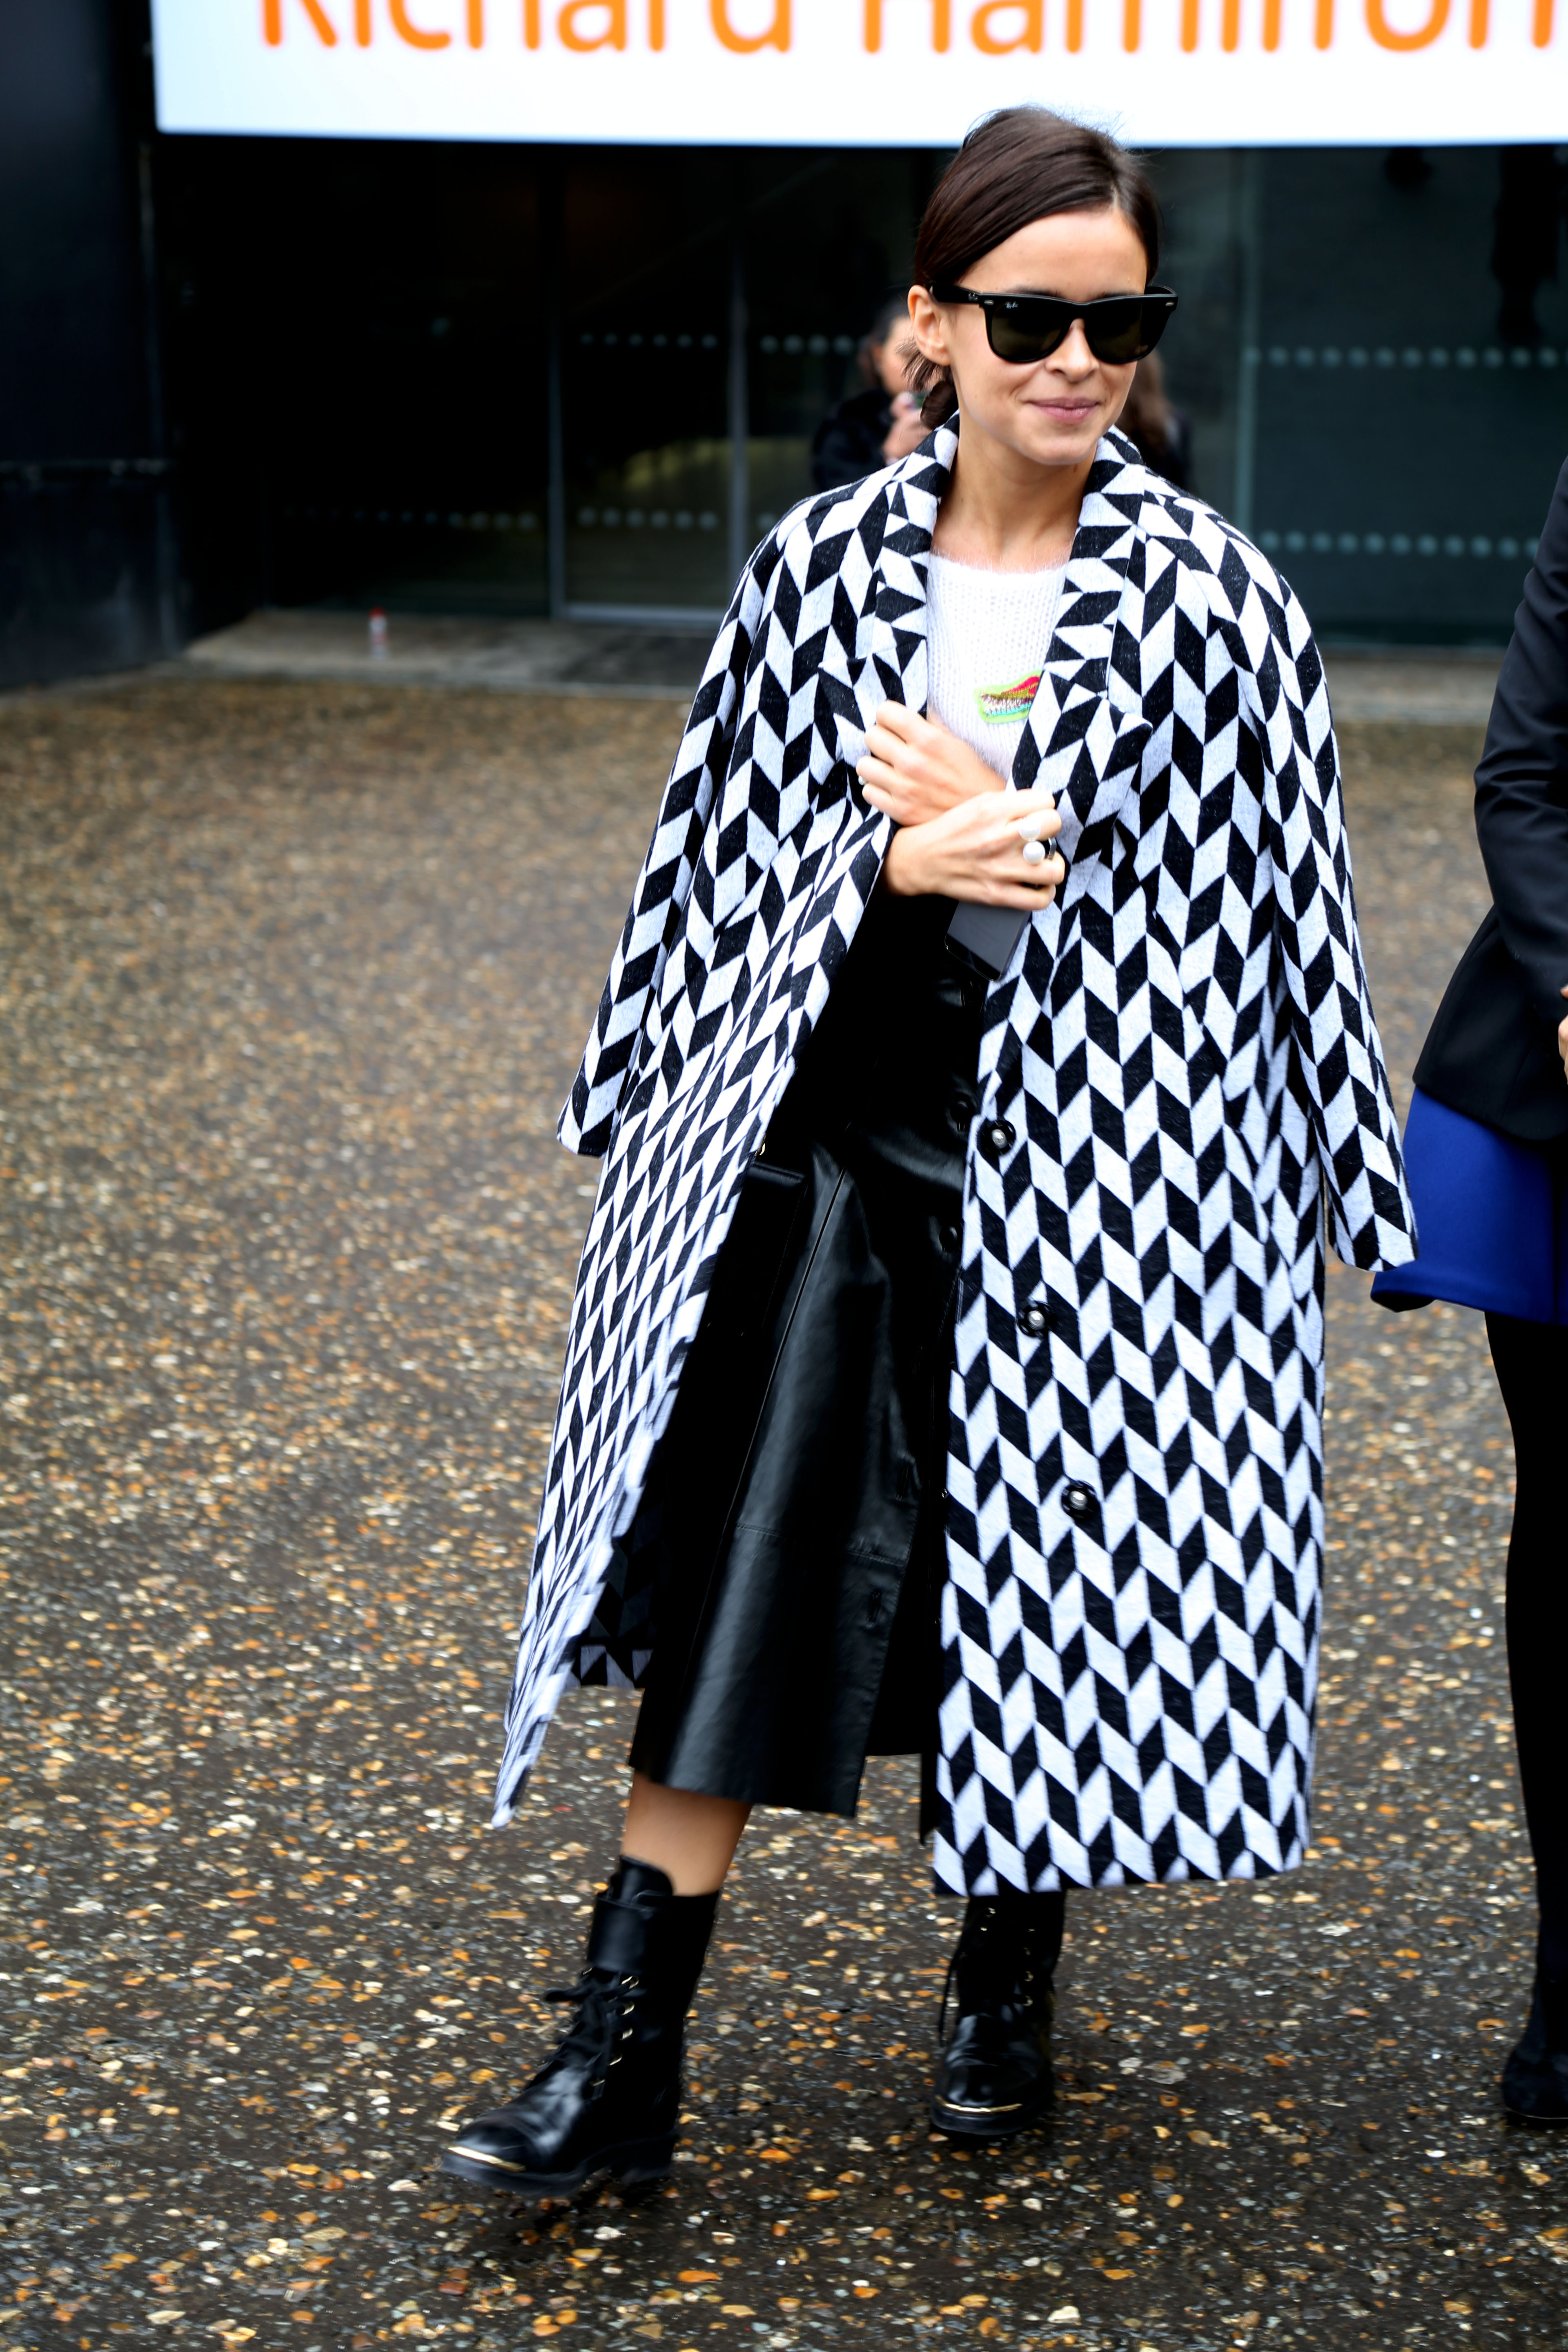 London Street Style Archives Alix De Beer